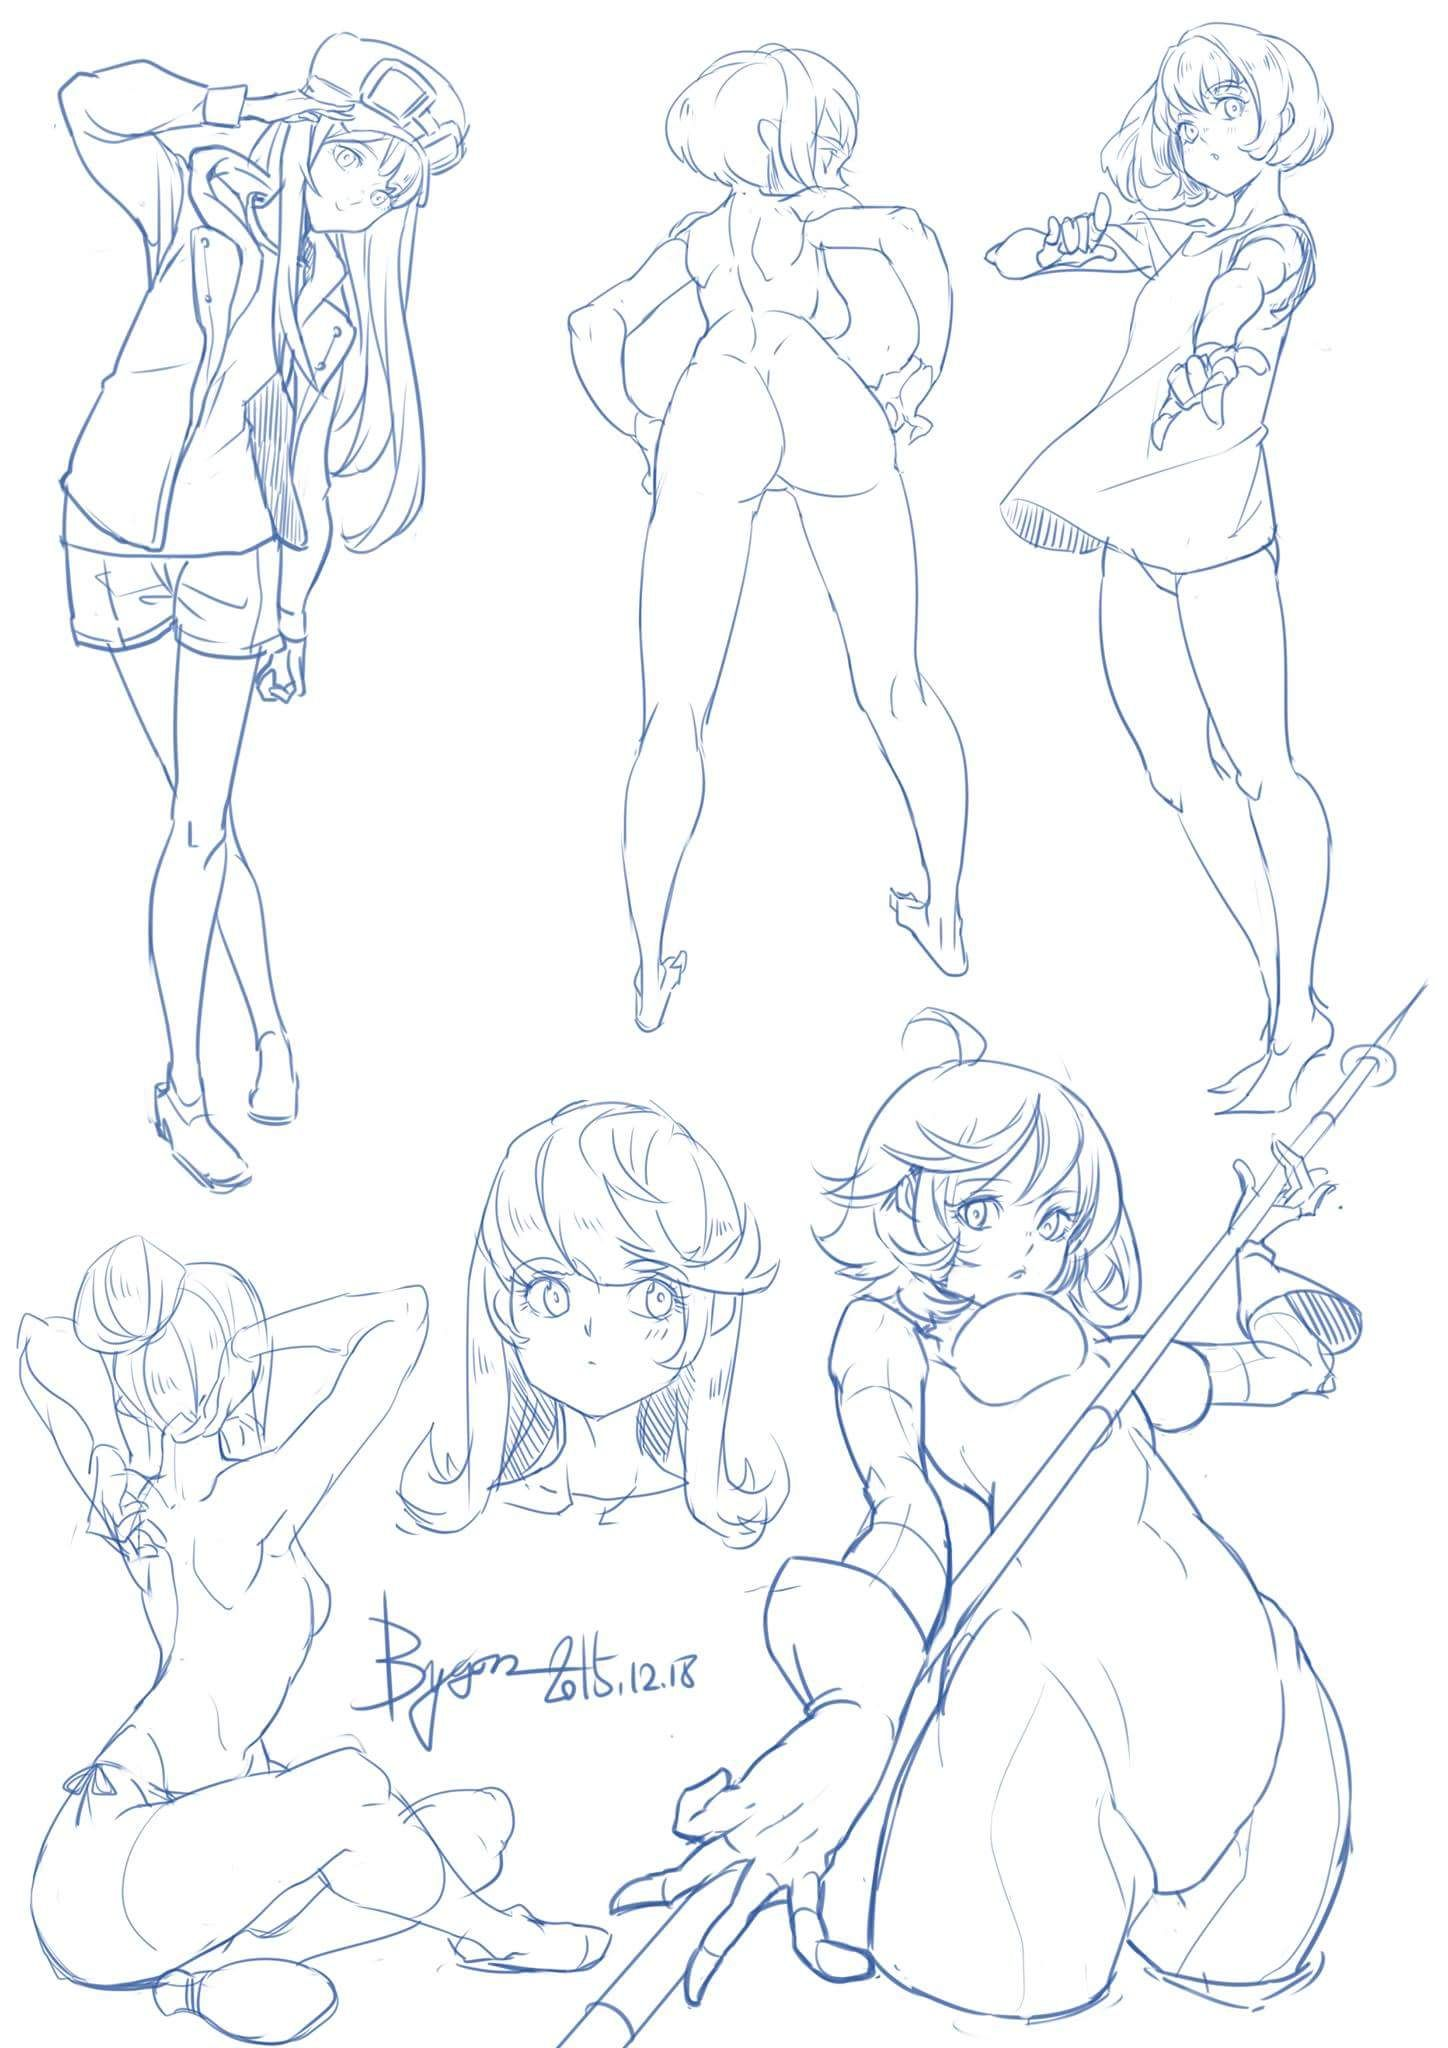 Pin by jyh on 포즈 | Pinterest | Pose, Draw and Sketches